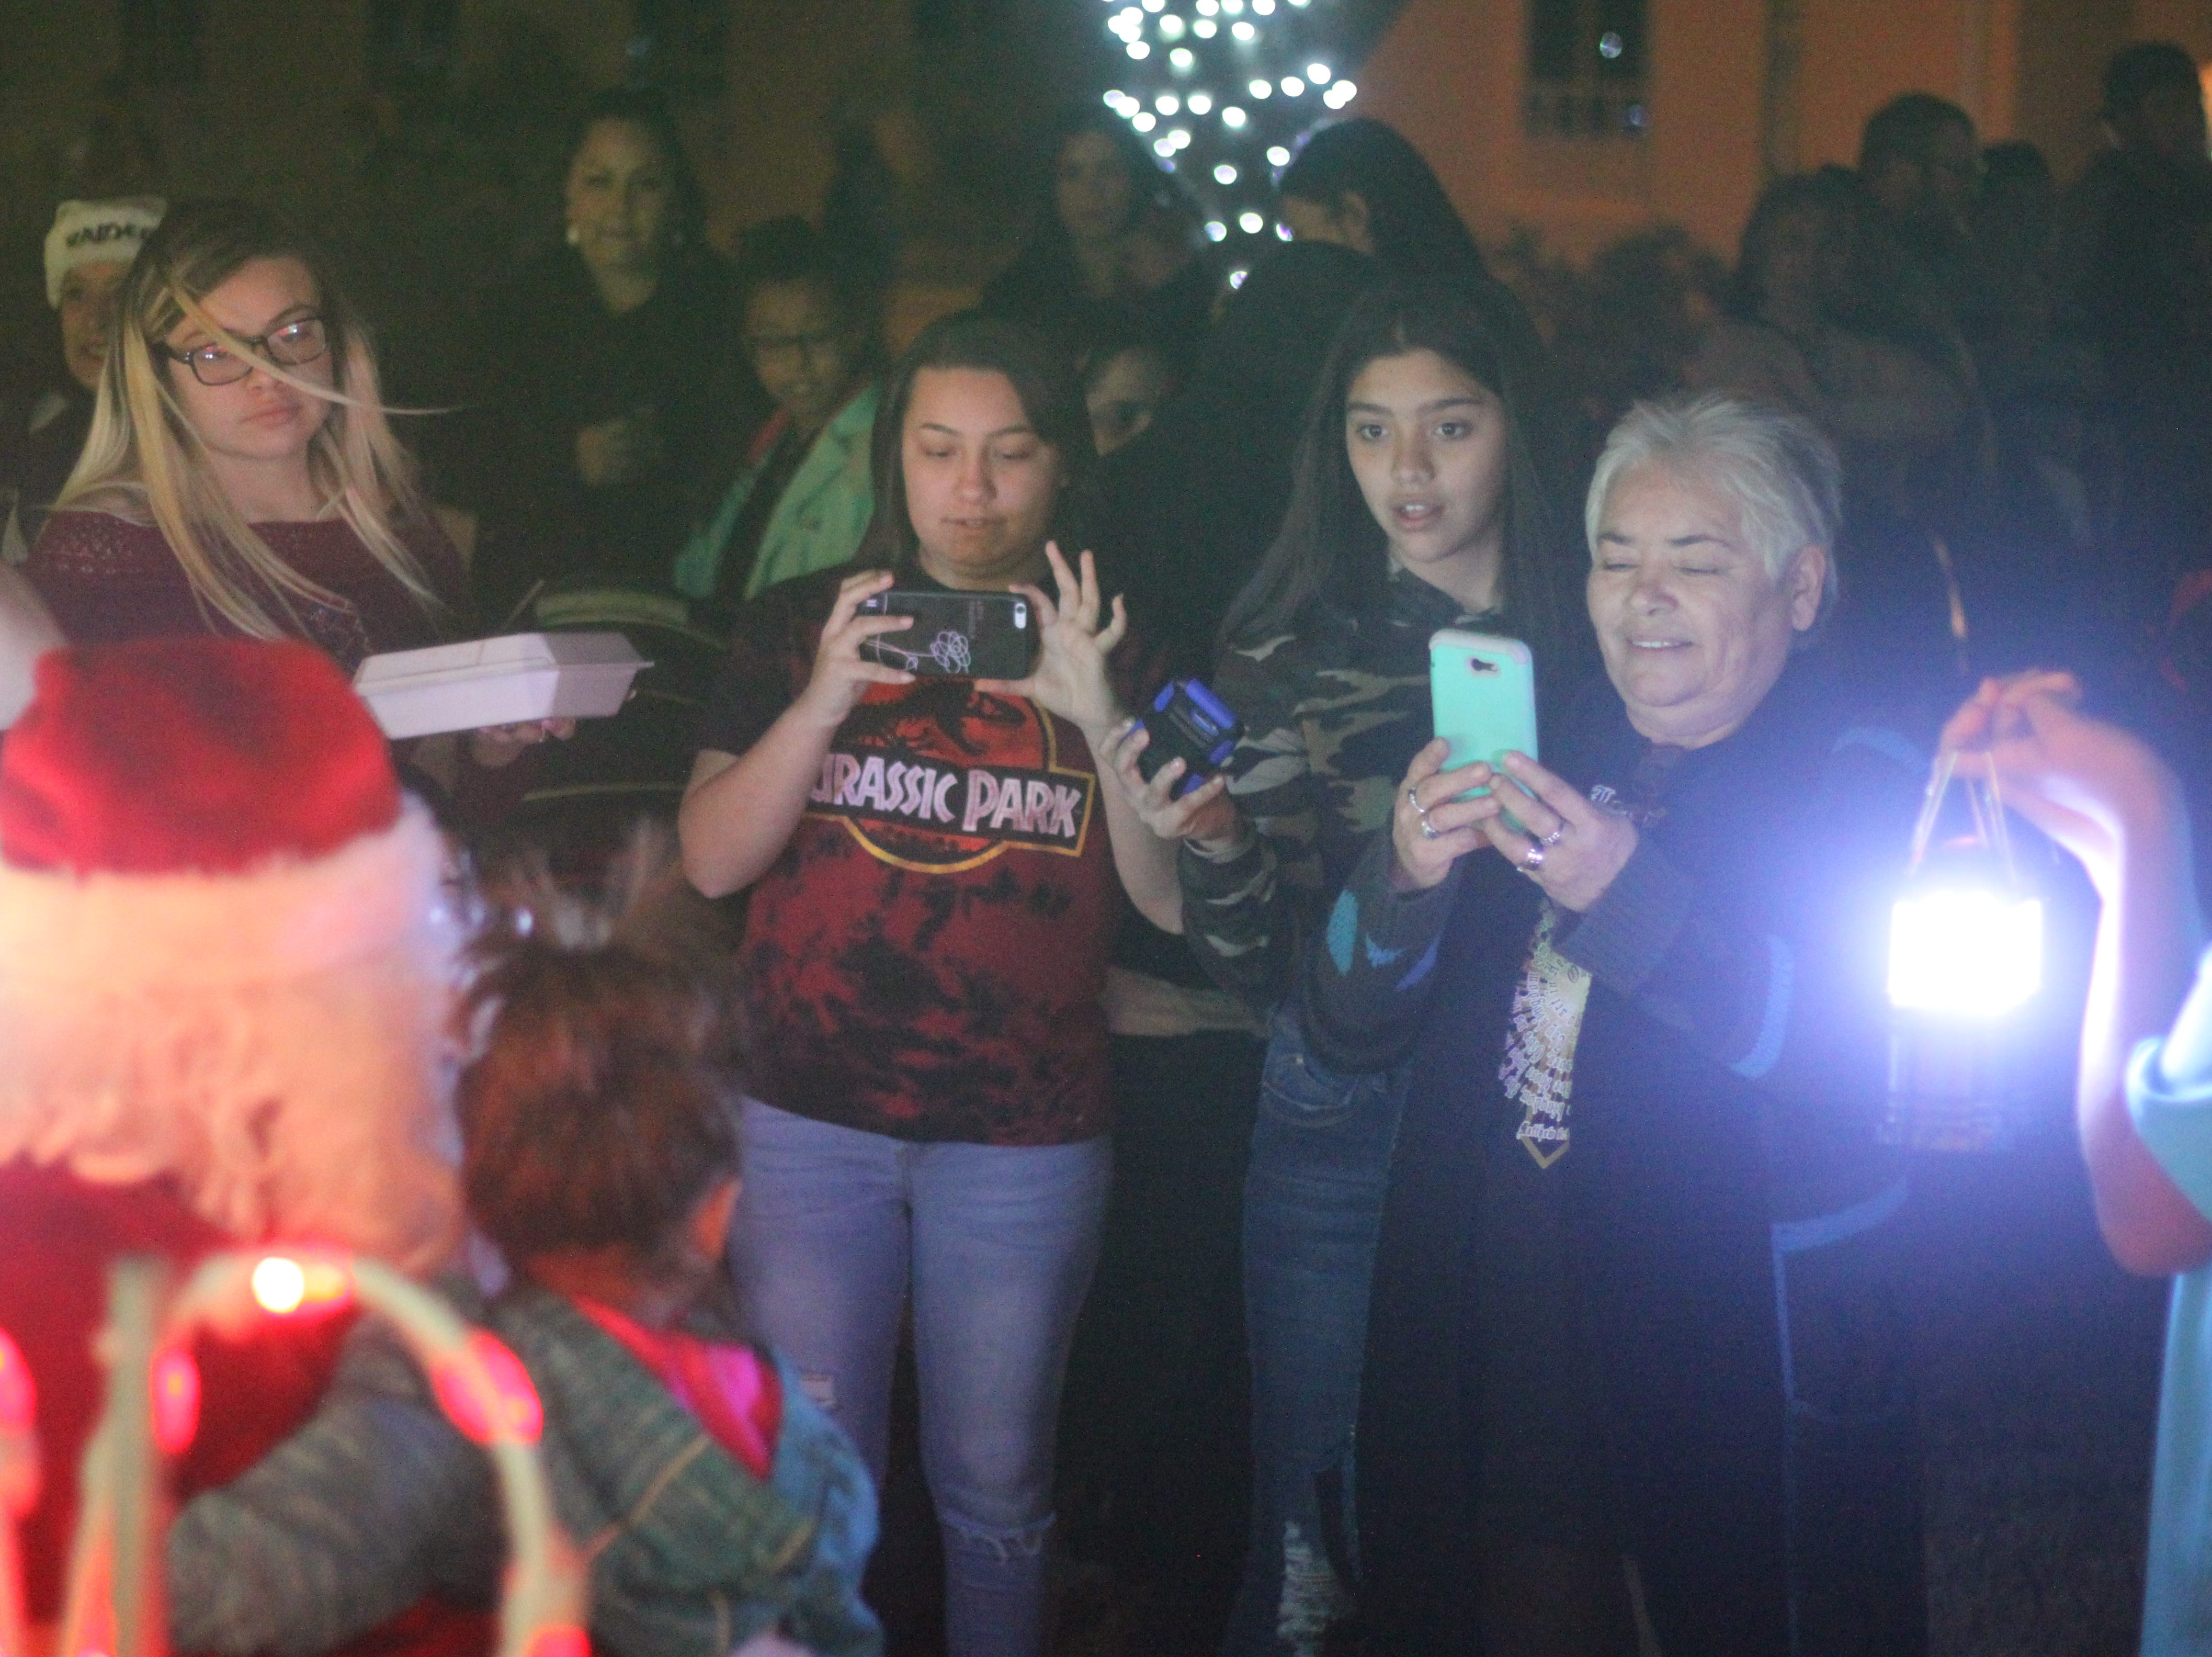 Locals ring in the holiday cheer, Nov. 24, 2018 at Halagueno Arts Park.